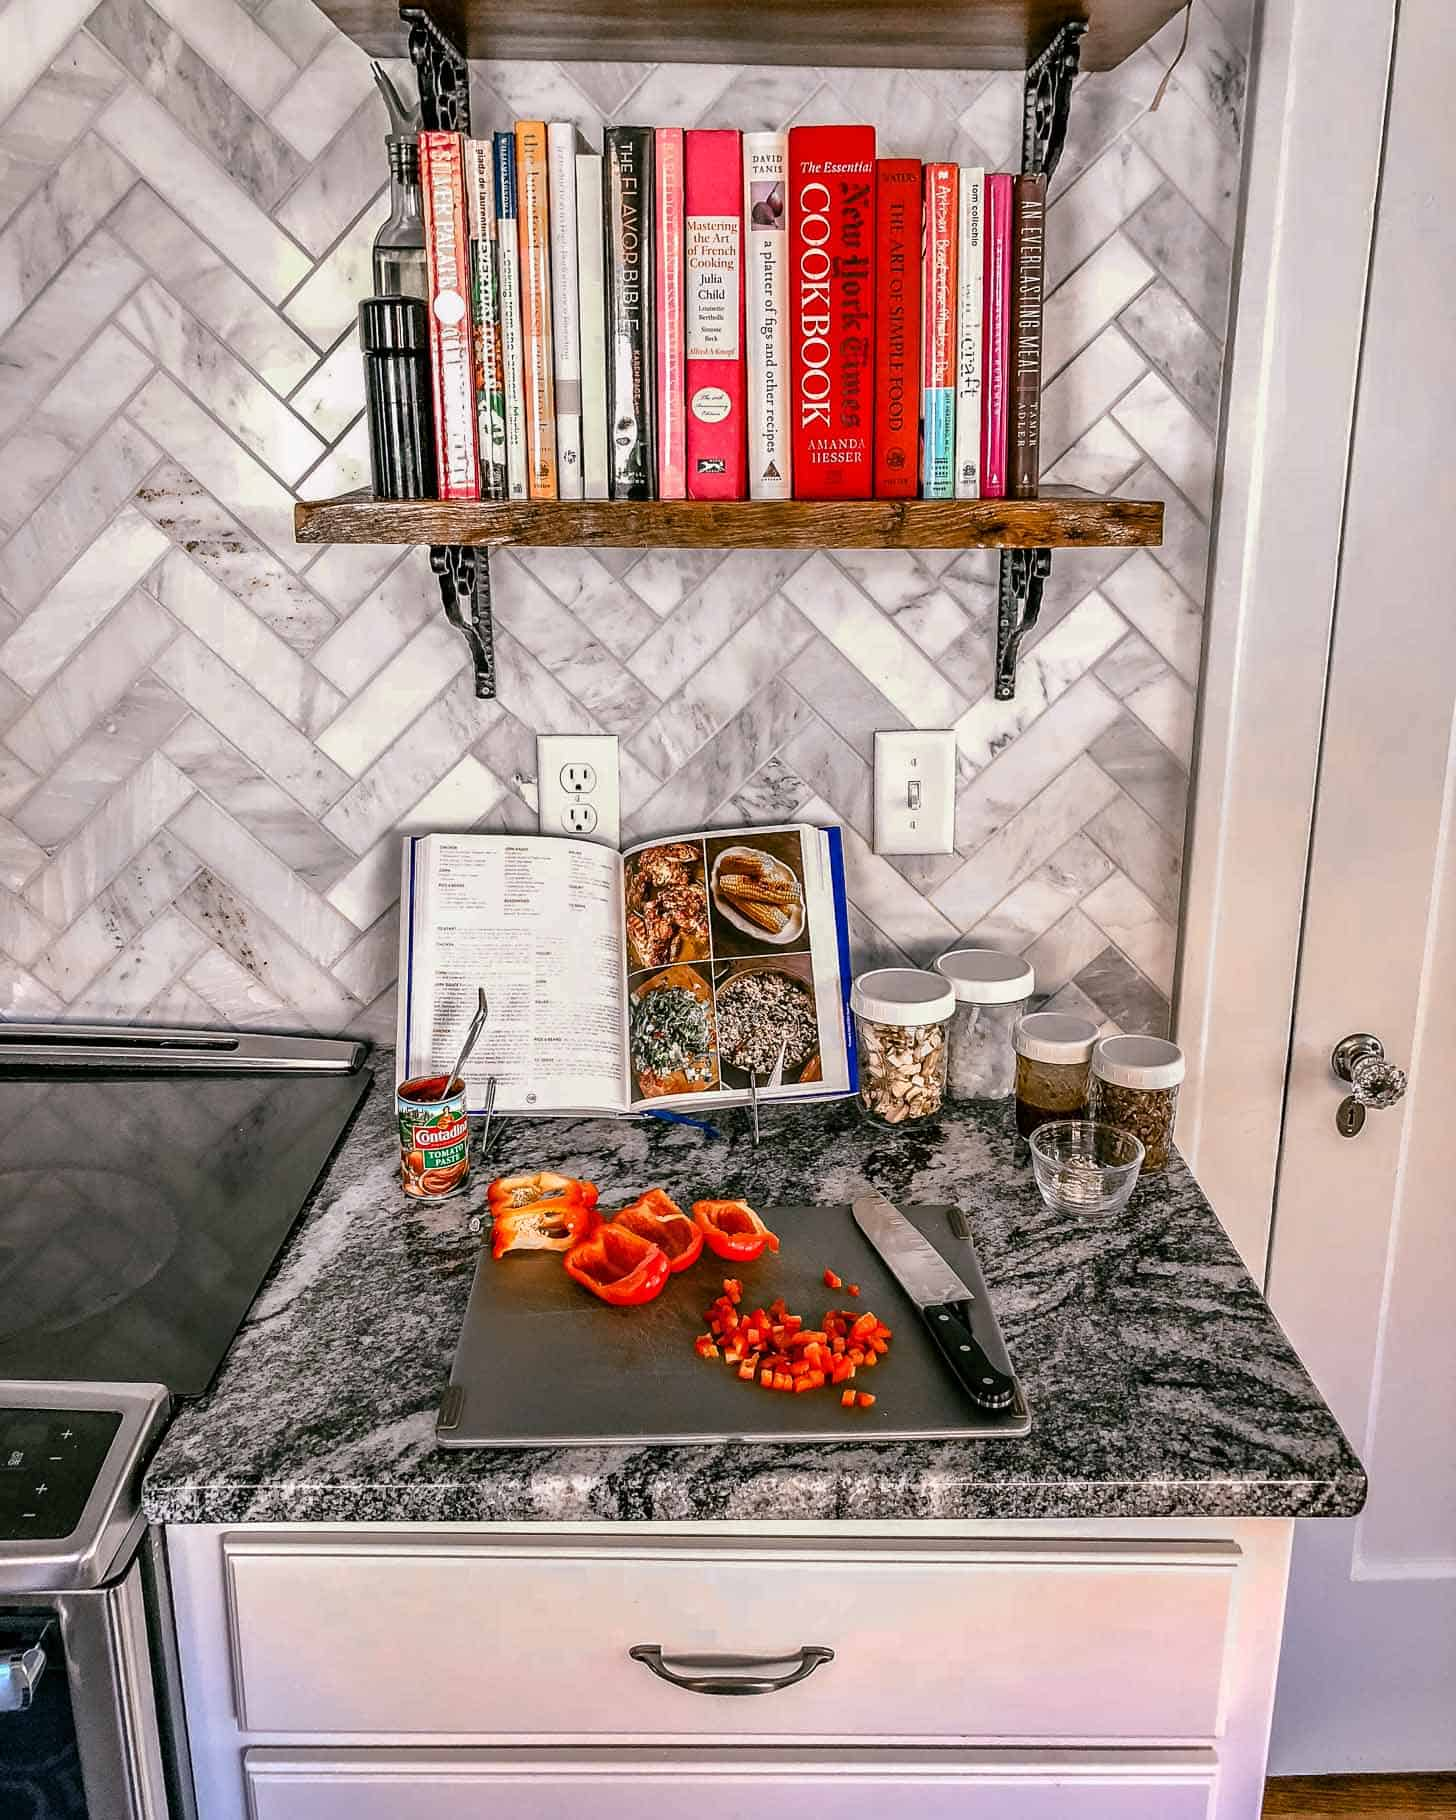 a cutting board on a grey countertop